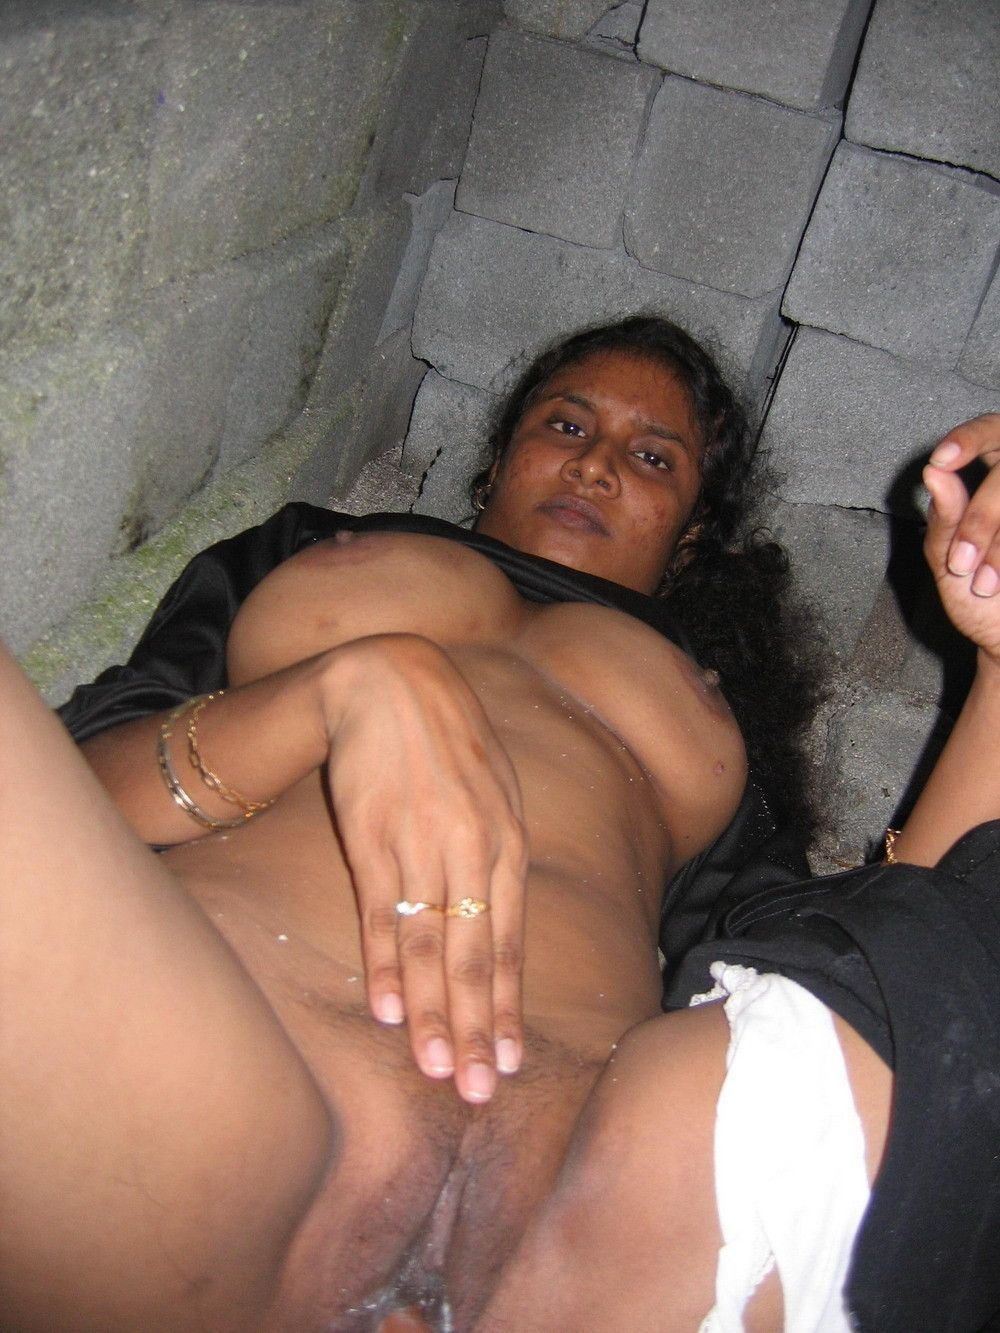 Women hd sexual photos villages indian